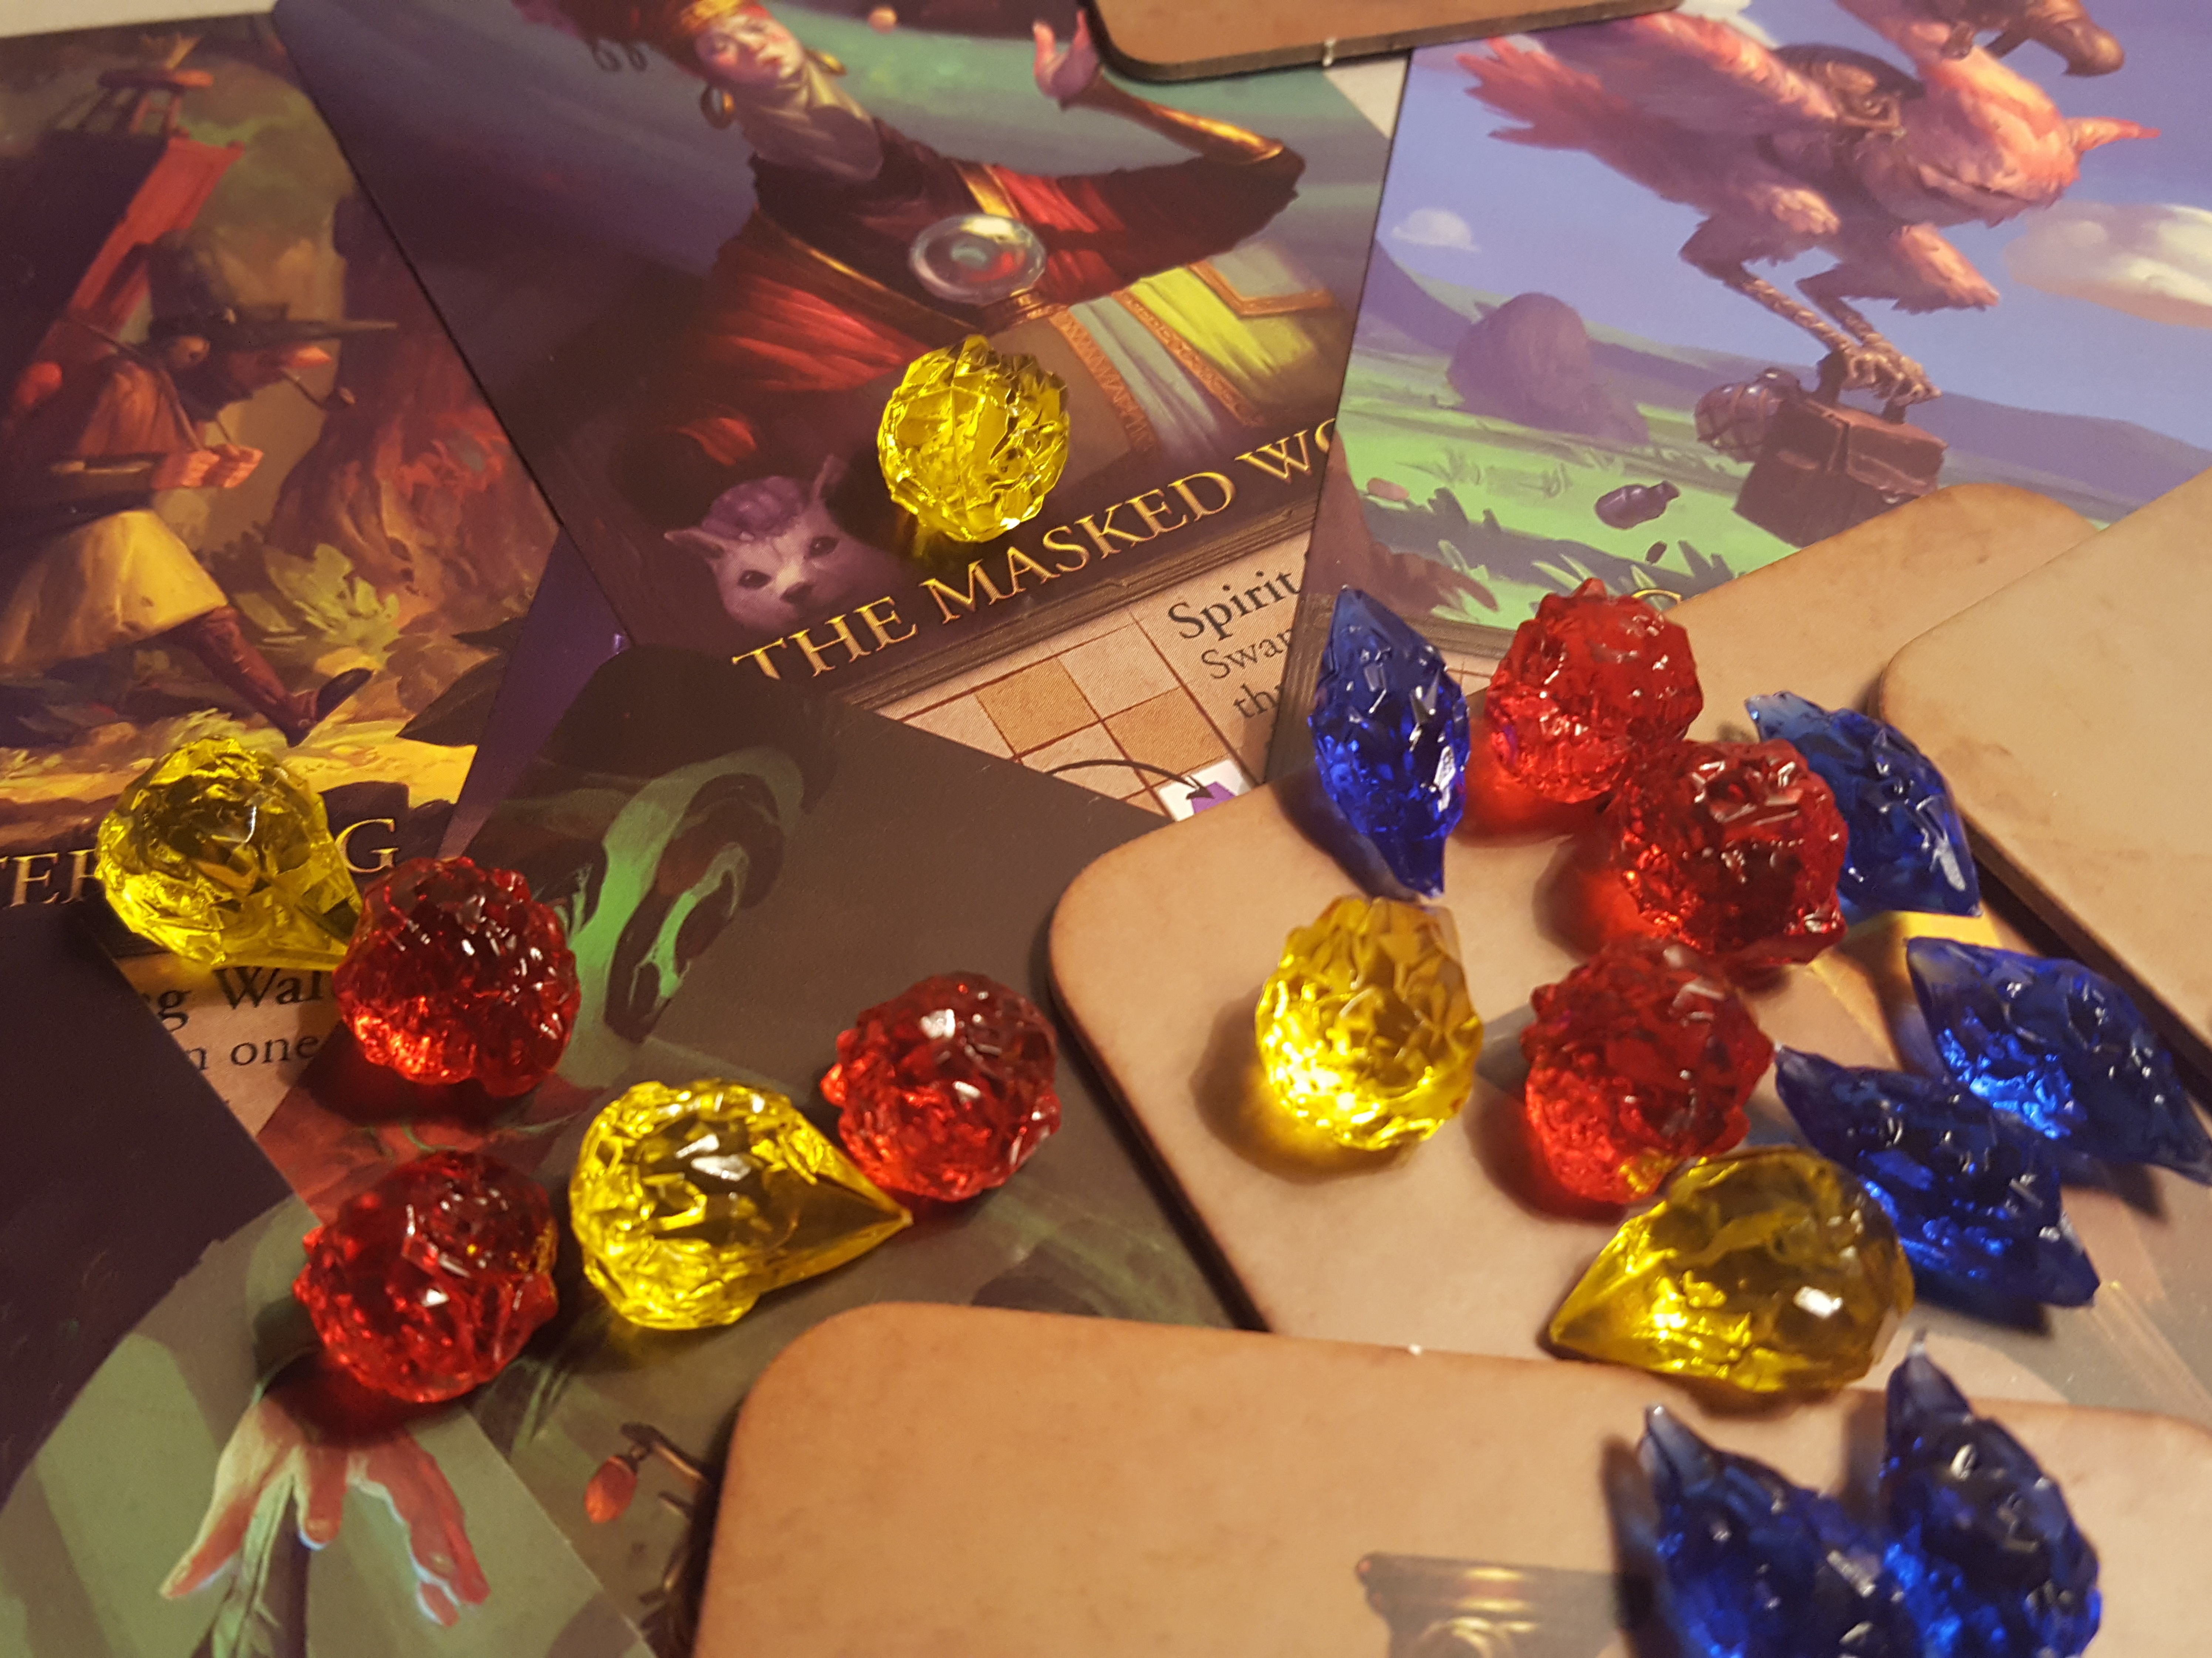 The Board Game 'Apotheca' Is Light, Amusing, Reality-Warped 'Connect Four'